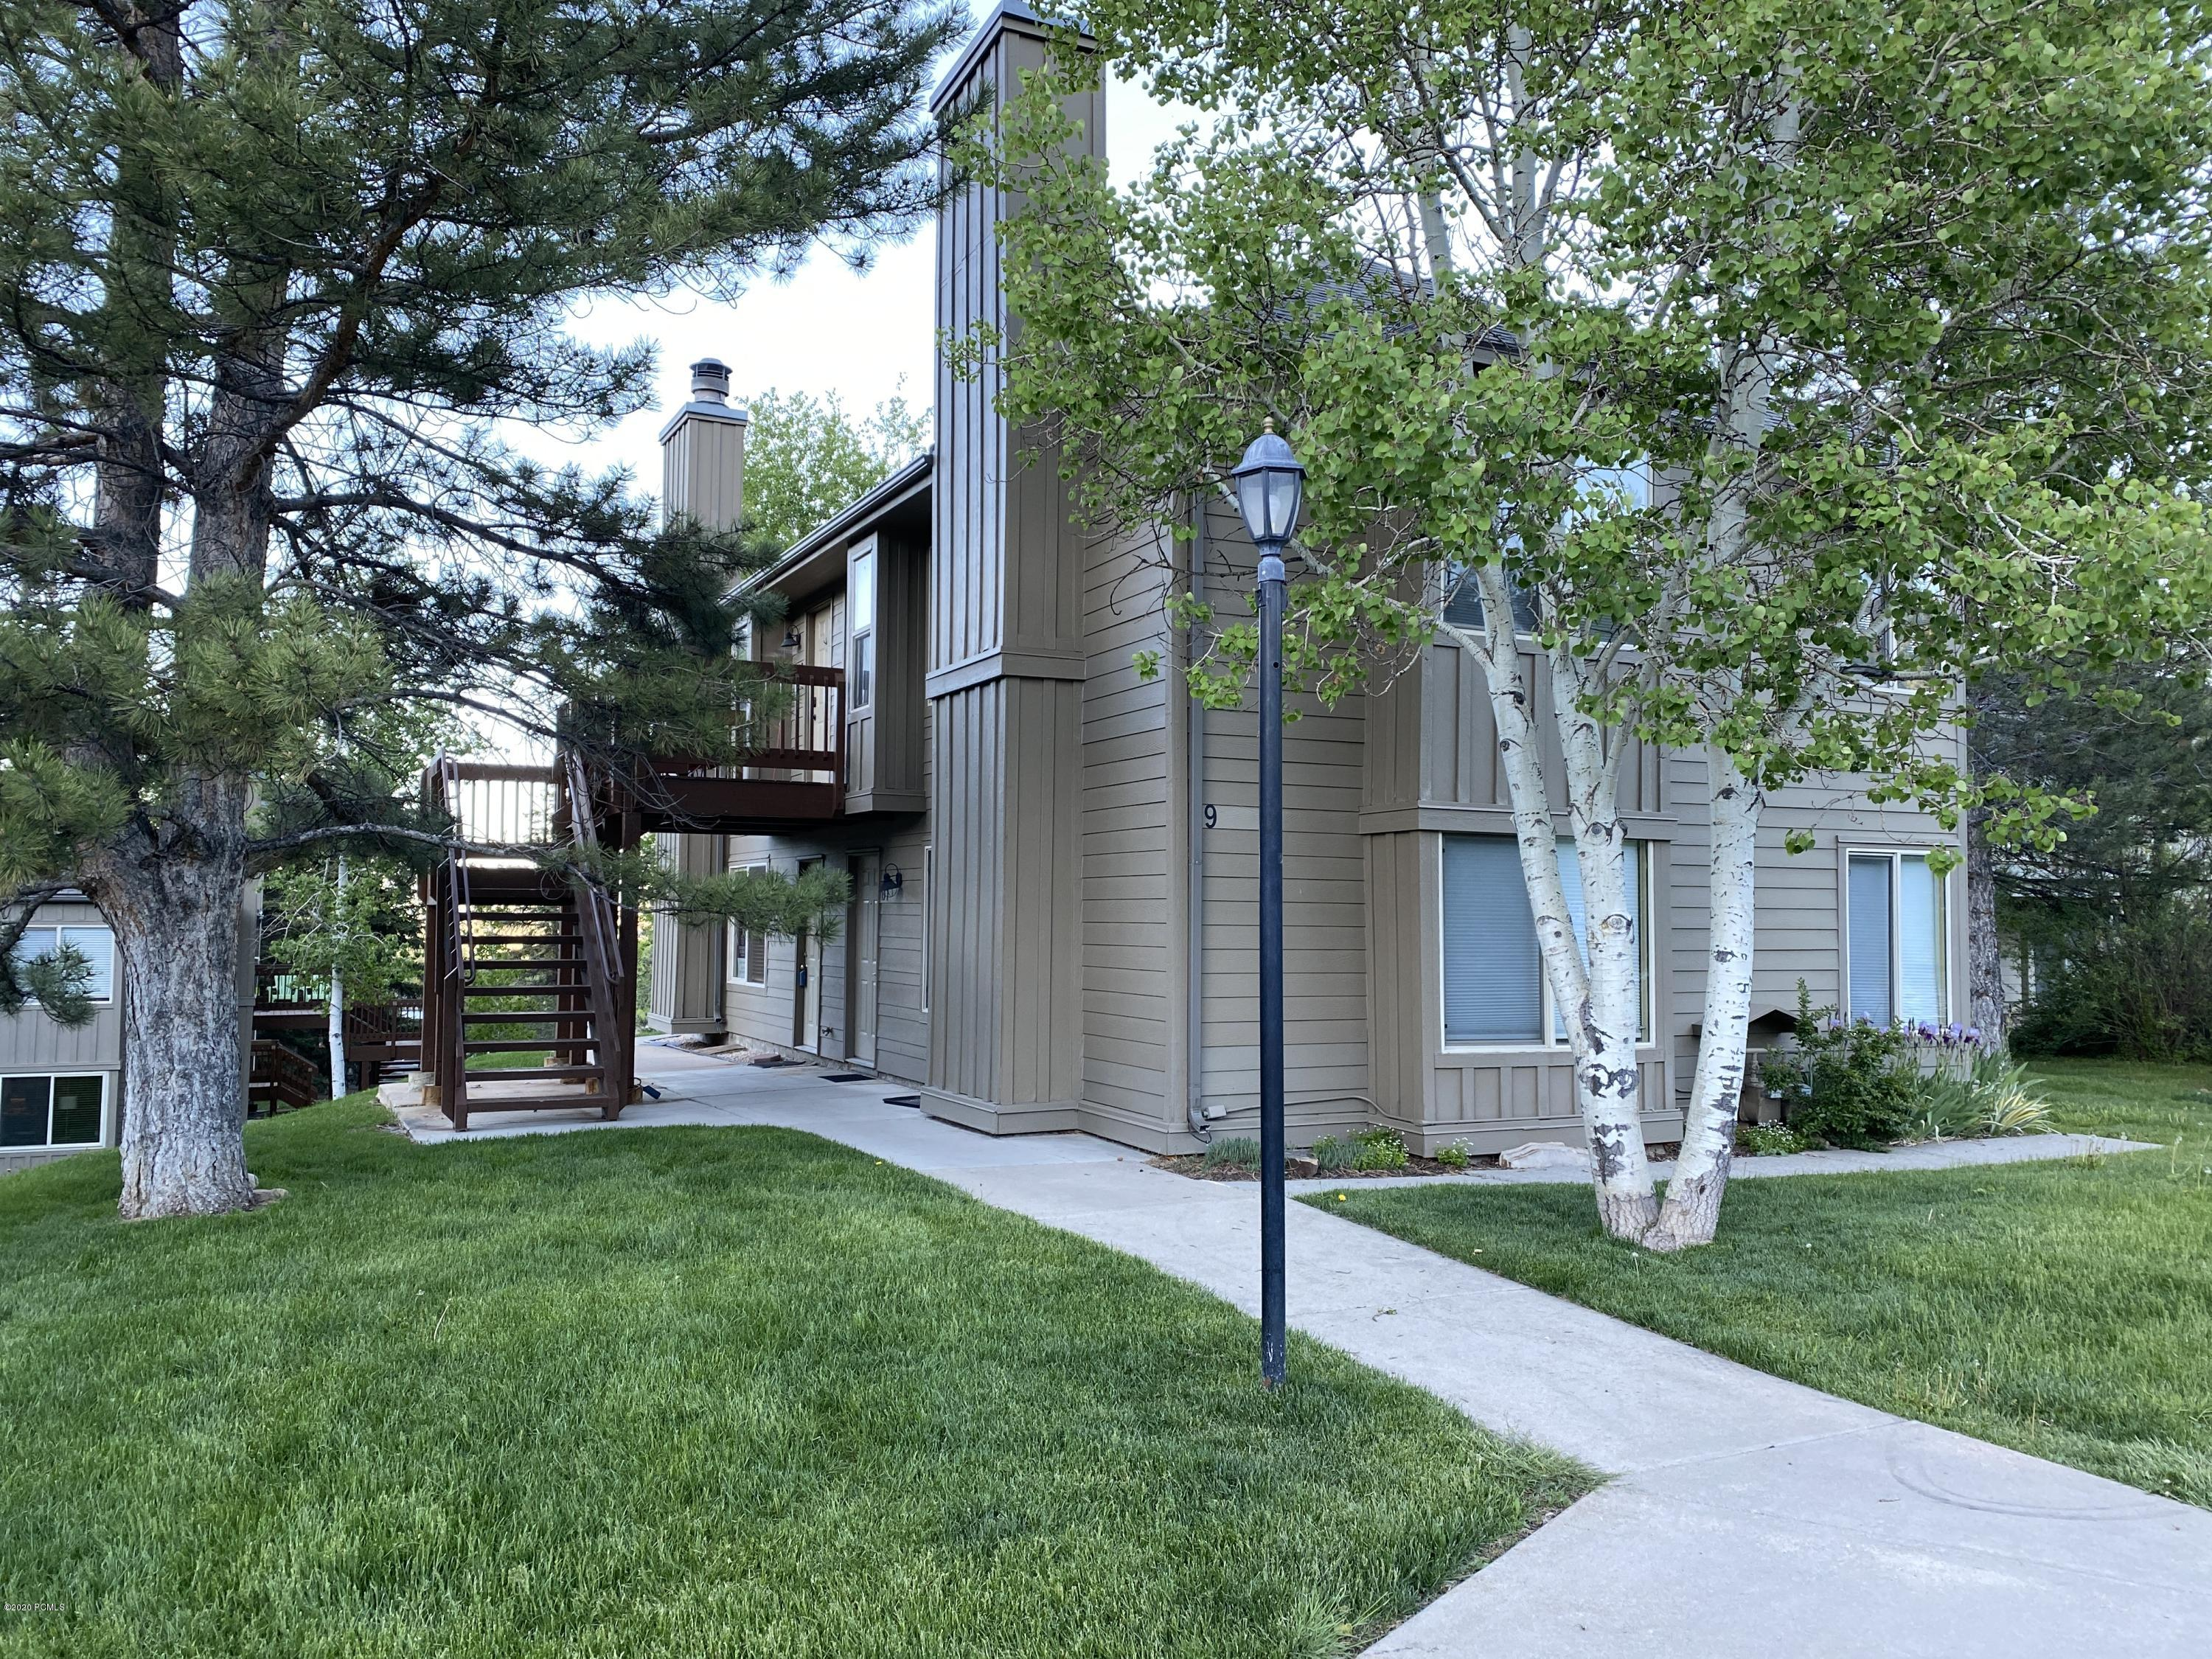 2100 Canyons Resort Drive, Park City, Utah 84098, 1 Bedroom Bedrooms, ,1 BathroomBathrooms,Condominium,For Sale,Canyons Resort,12000059